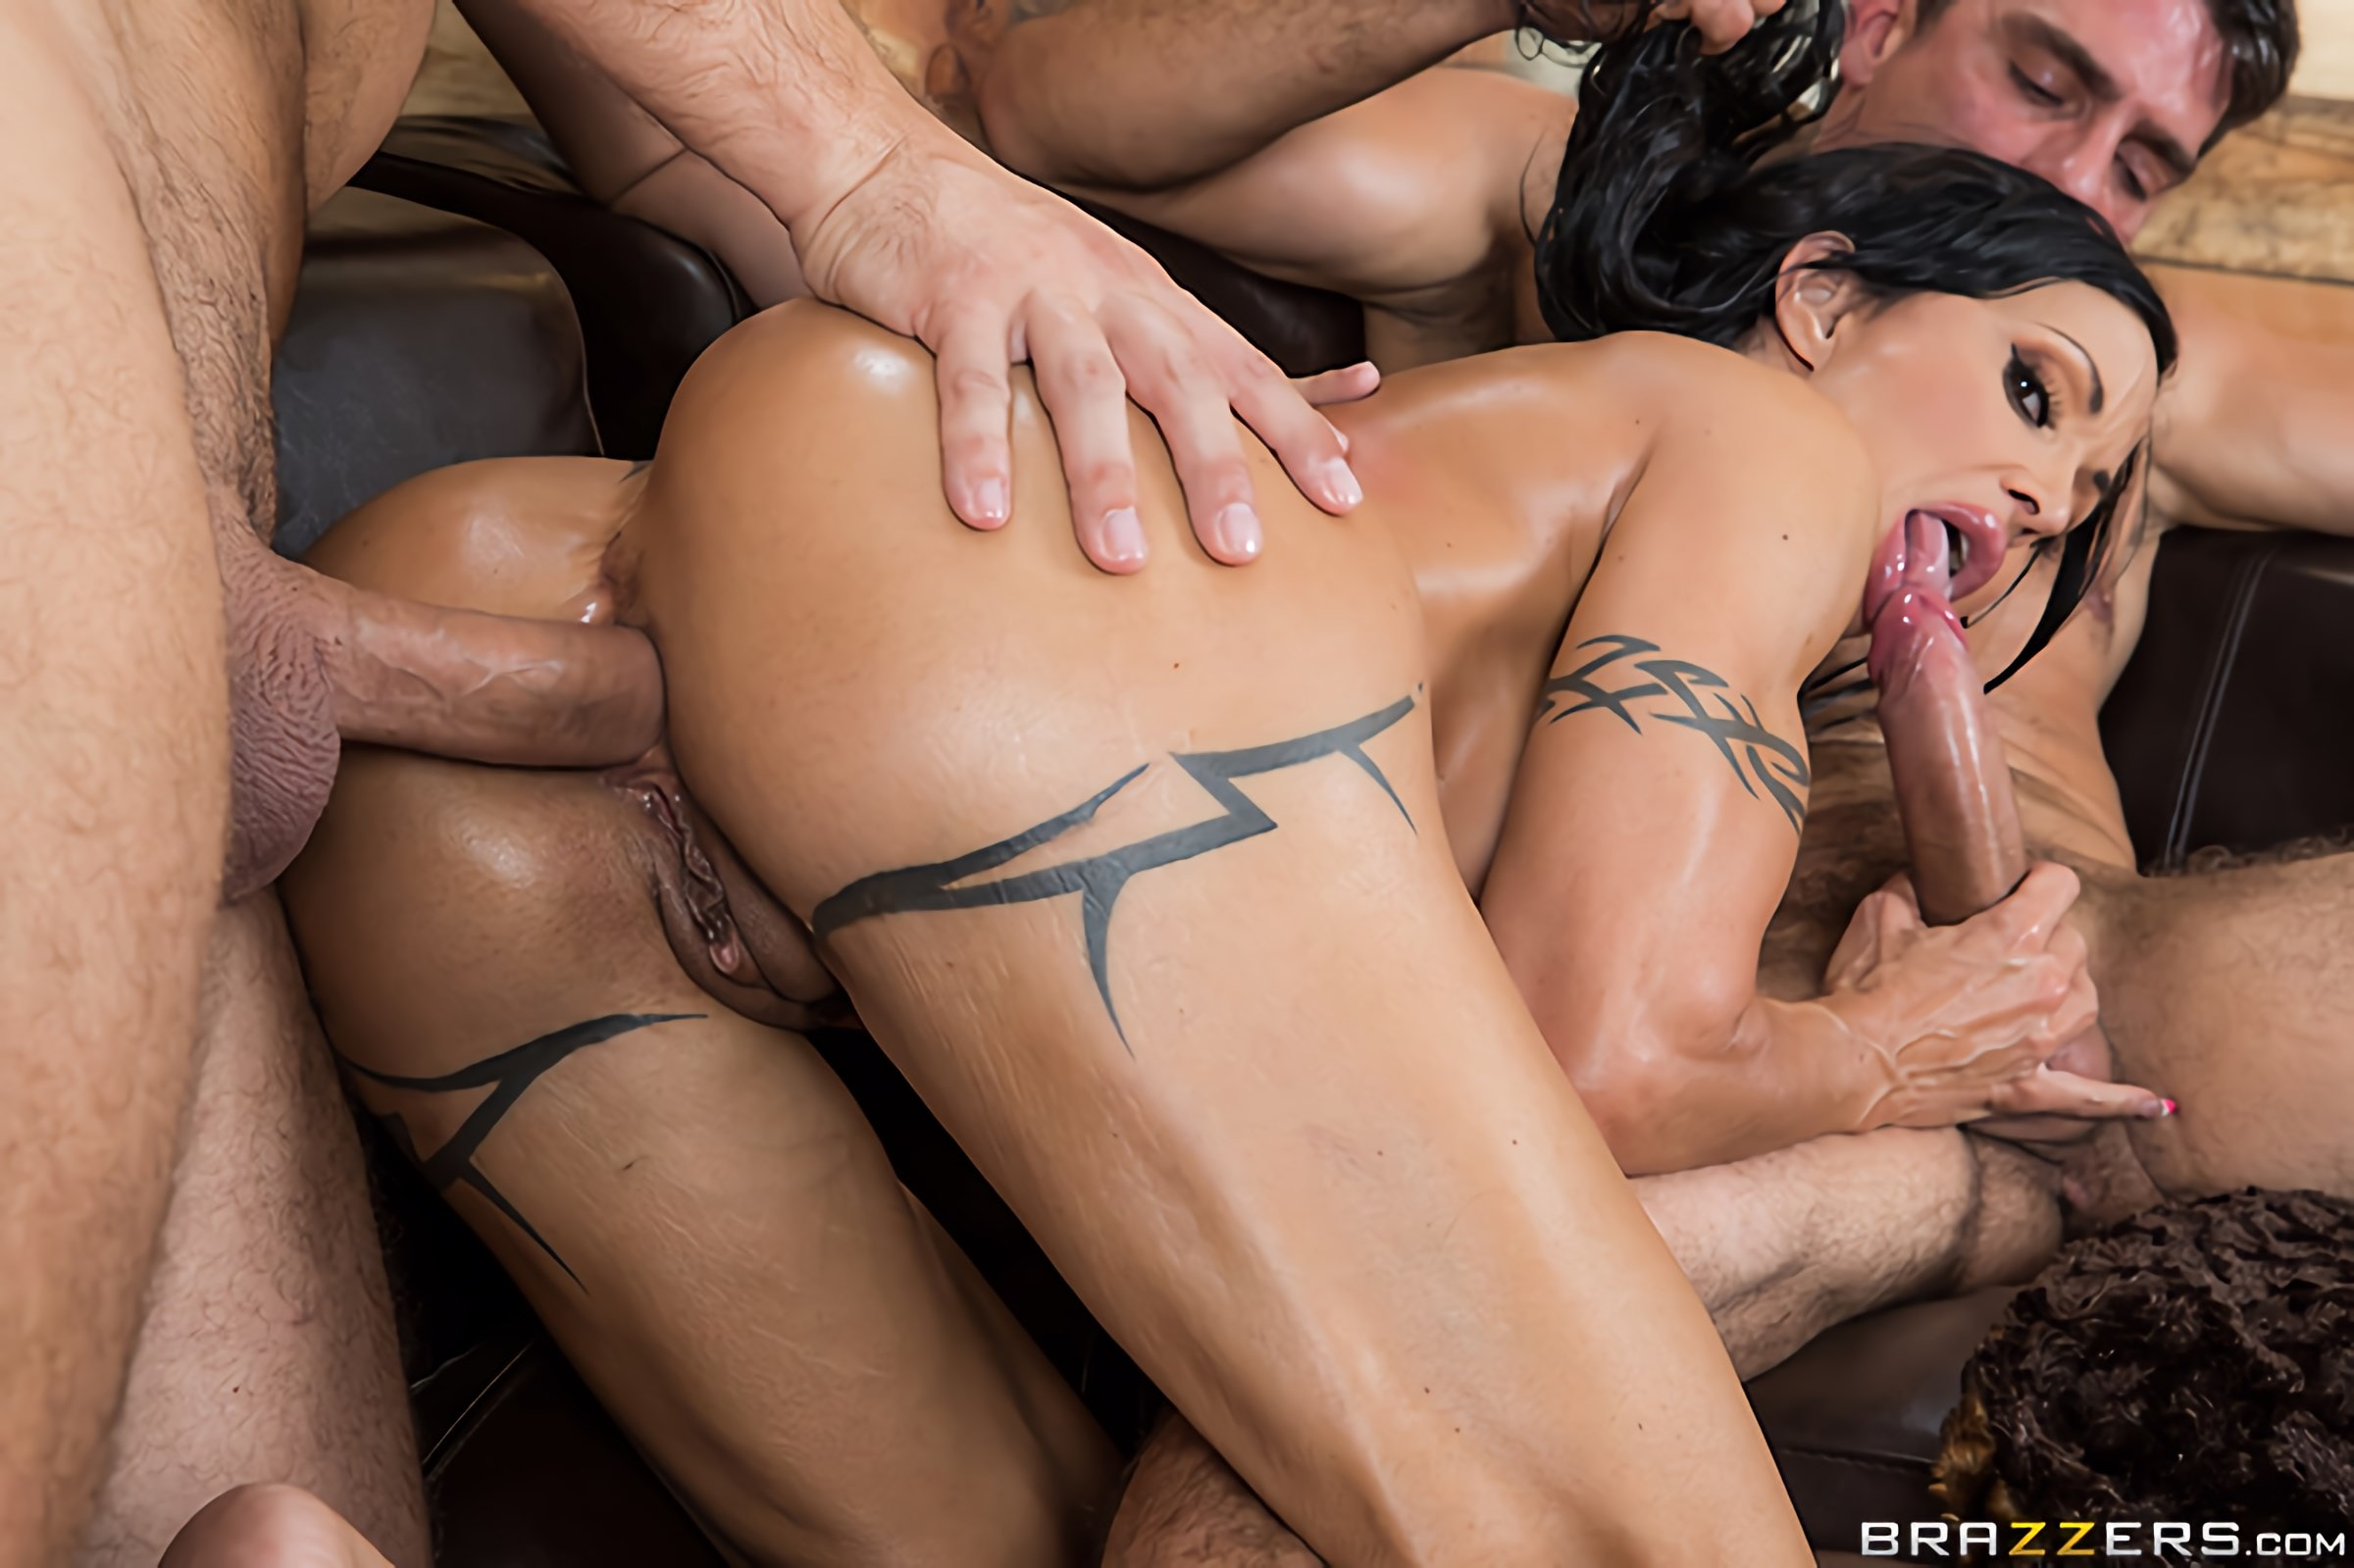 Brazzers 'My Two Fuck Boys' starring Jewels Jade (Photo 10)